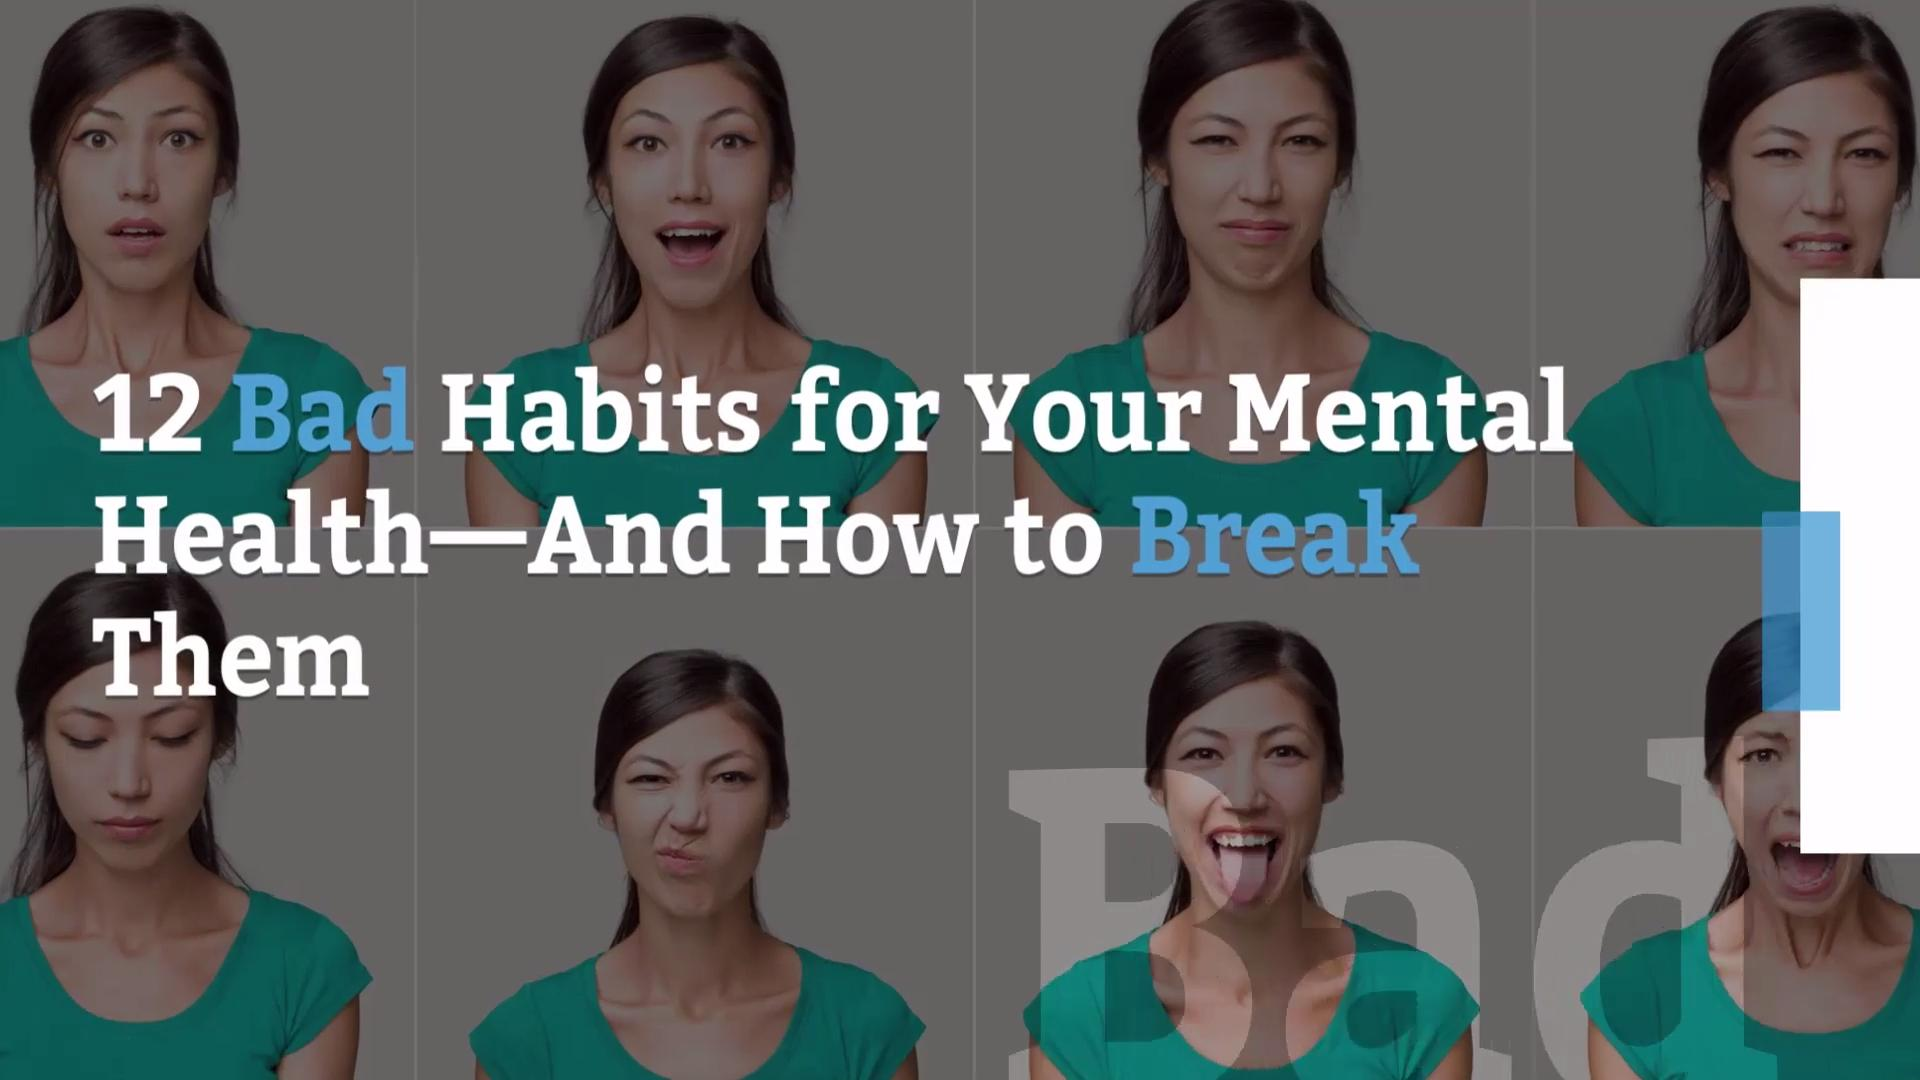 14 Habits That Sabotage Your Mental Health - Health